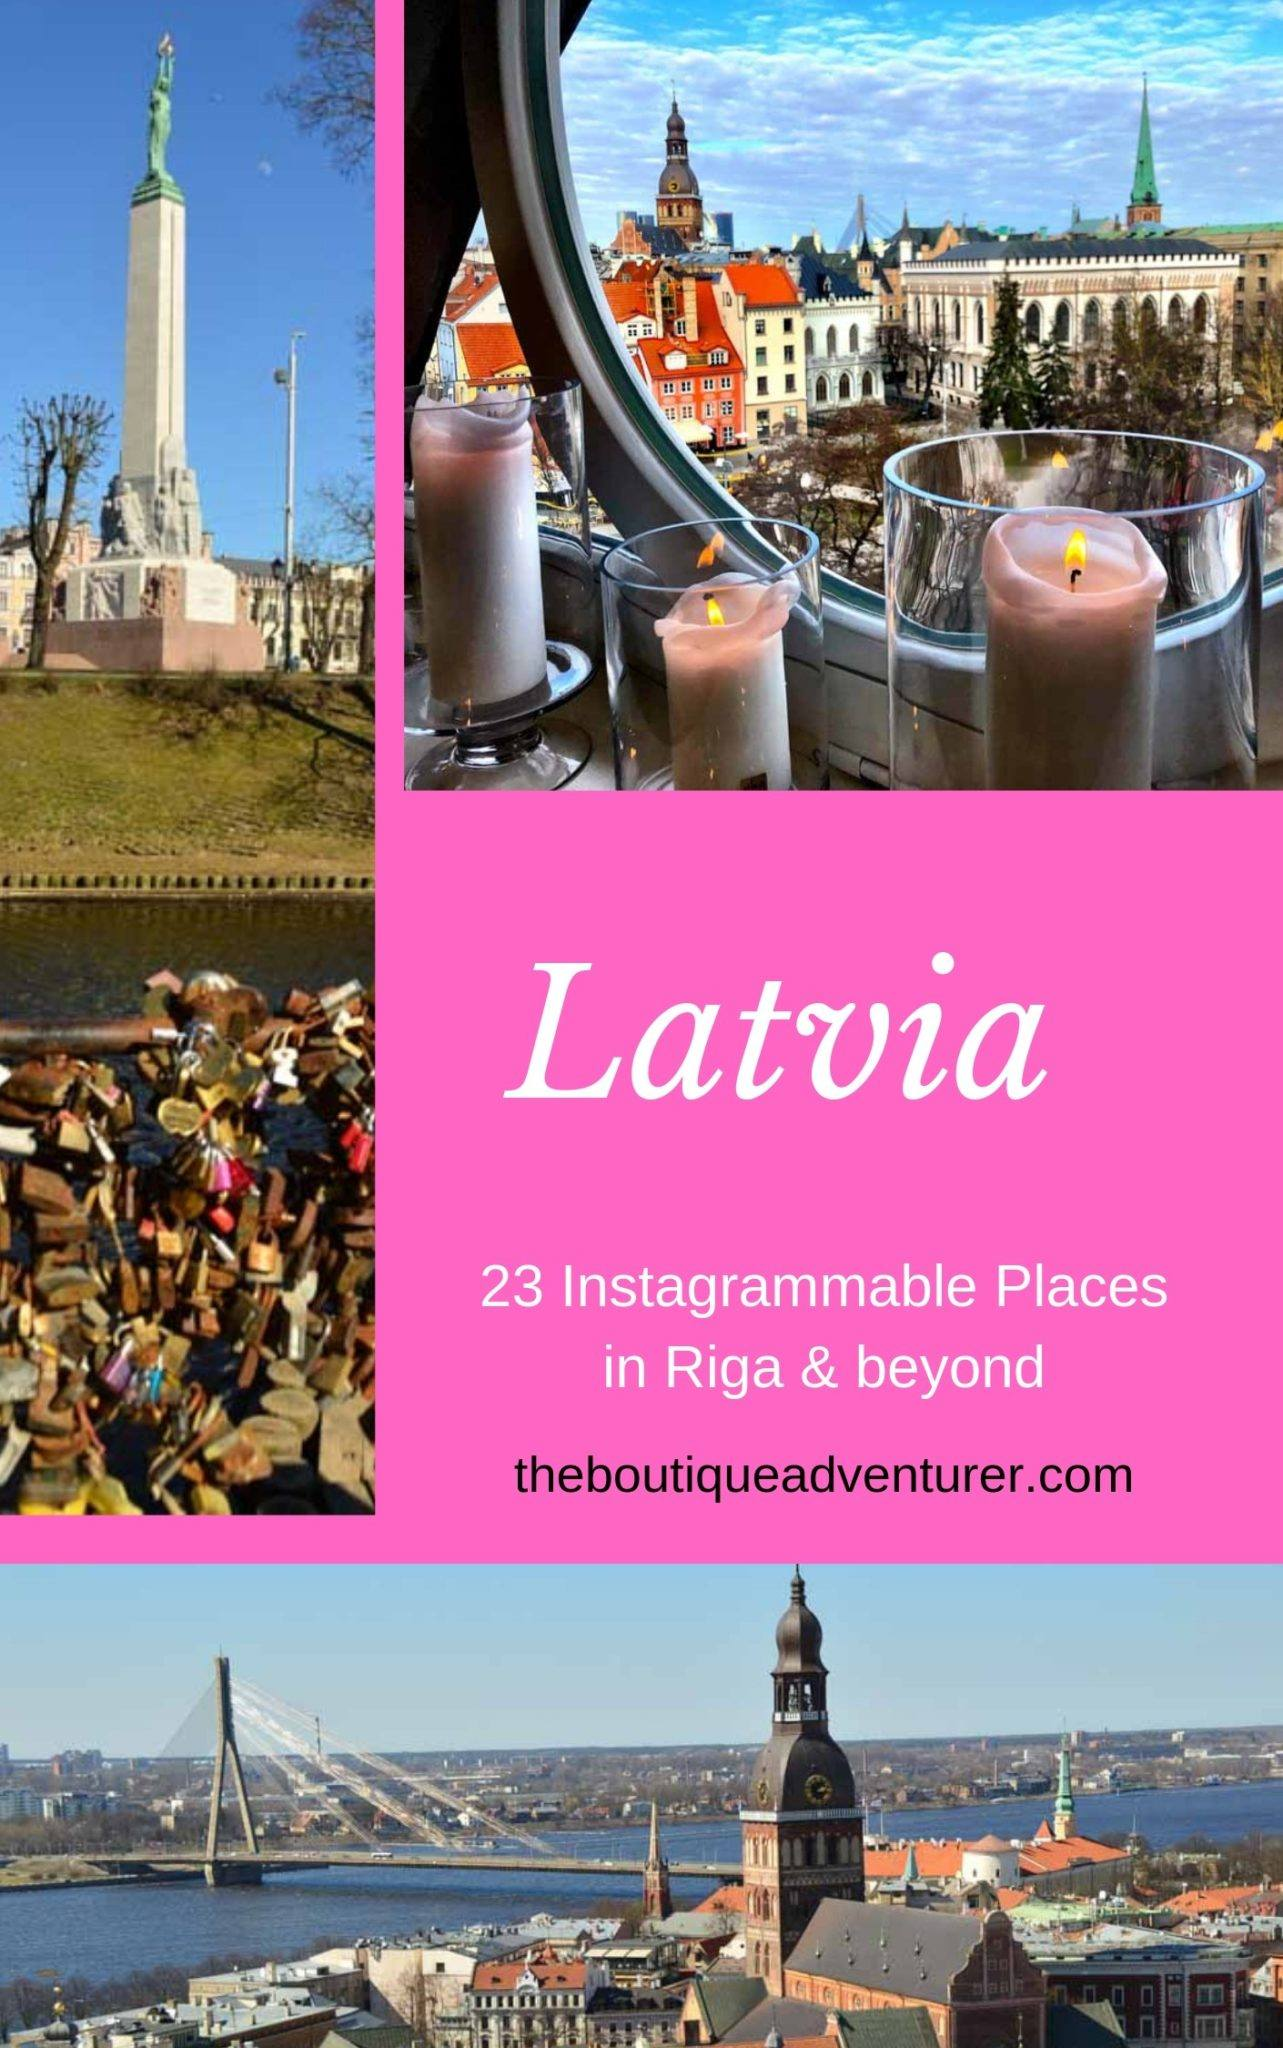 Latvia is extremely photogenic! Check out the many instagram opportunities in the lovely Riga and in the areas around it - from a real bog to wooden houses to art nouveau architecture @enjoylatvi #latvia #riga